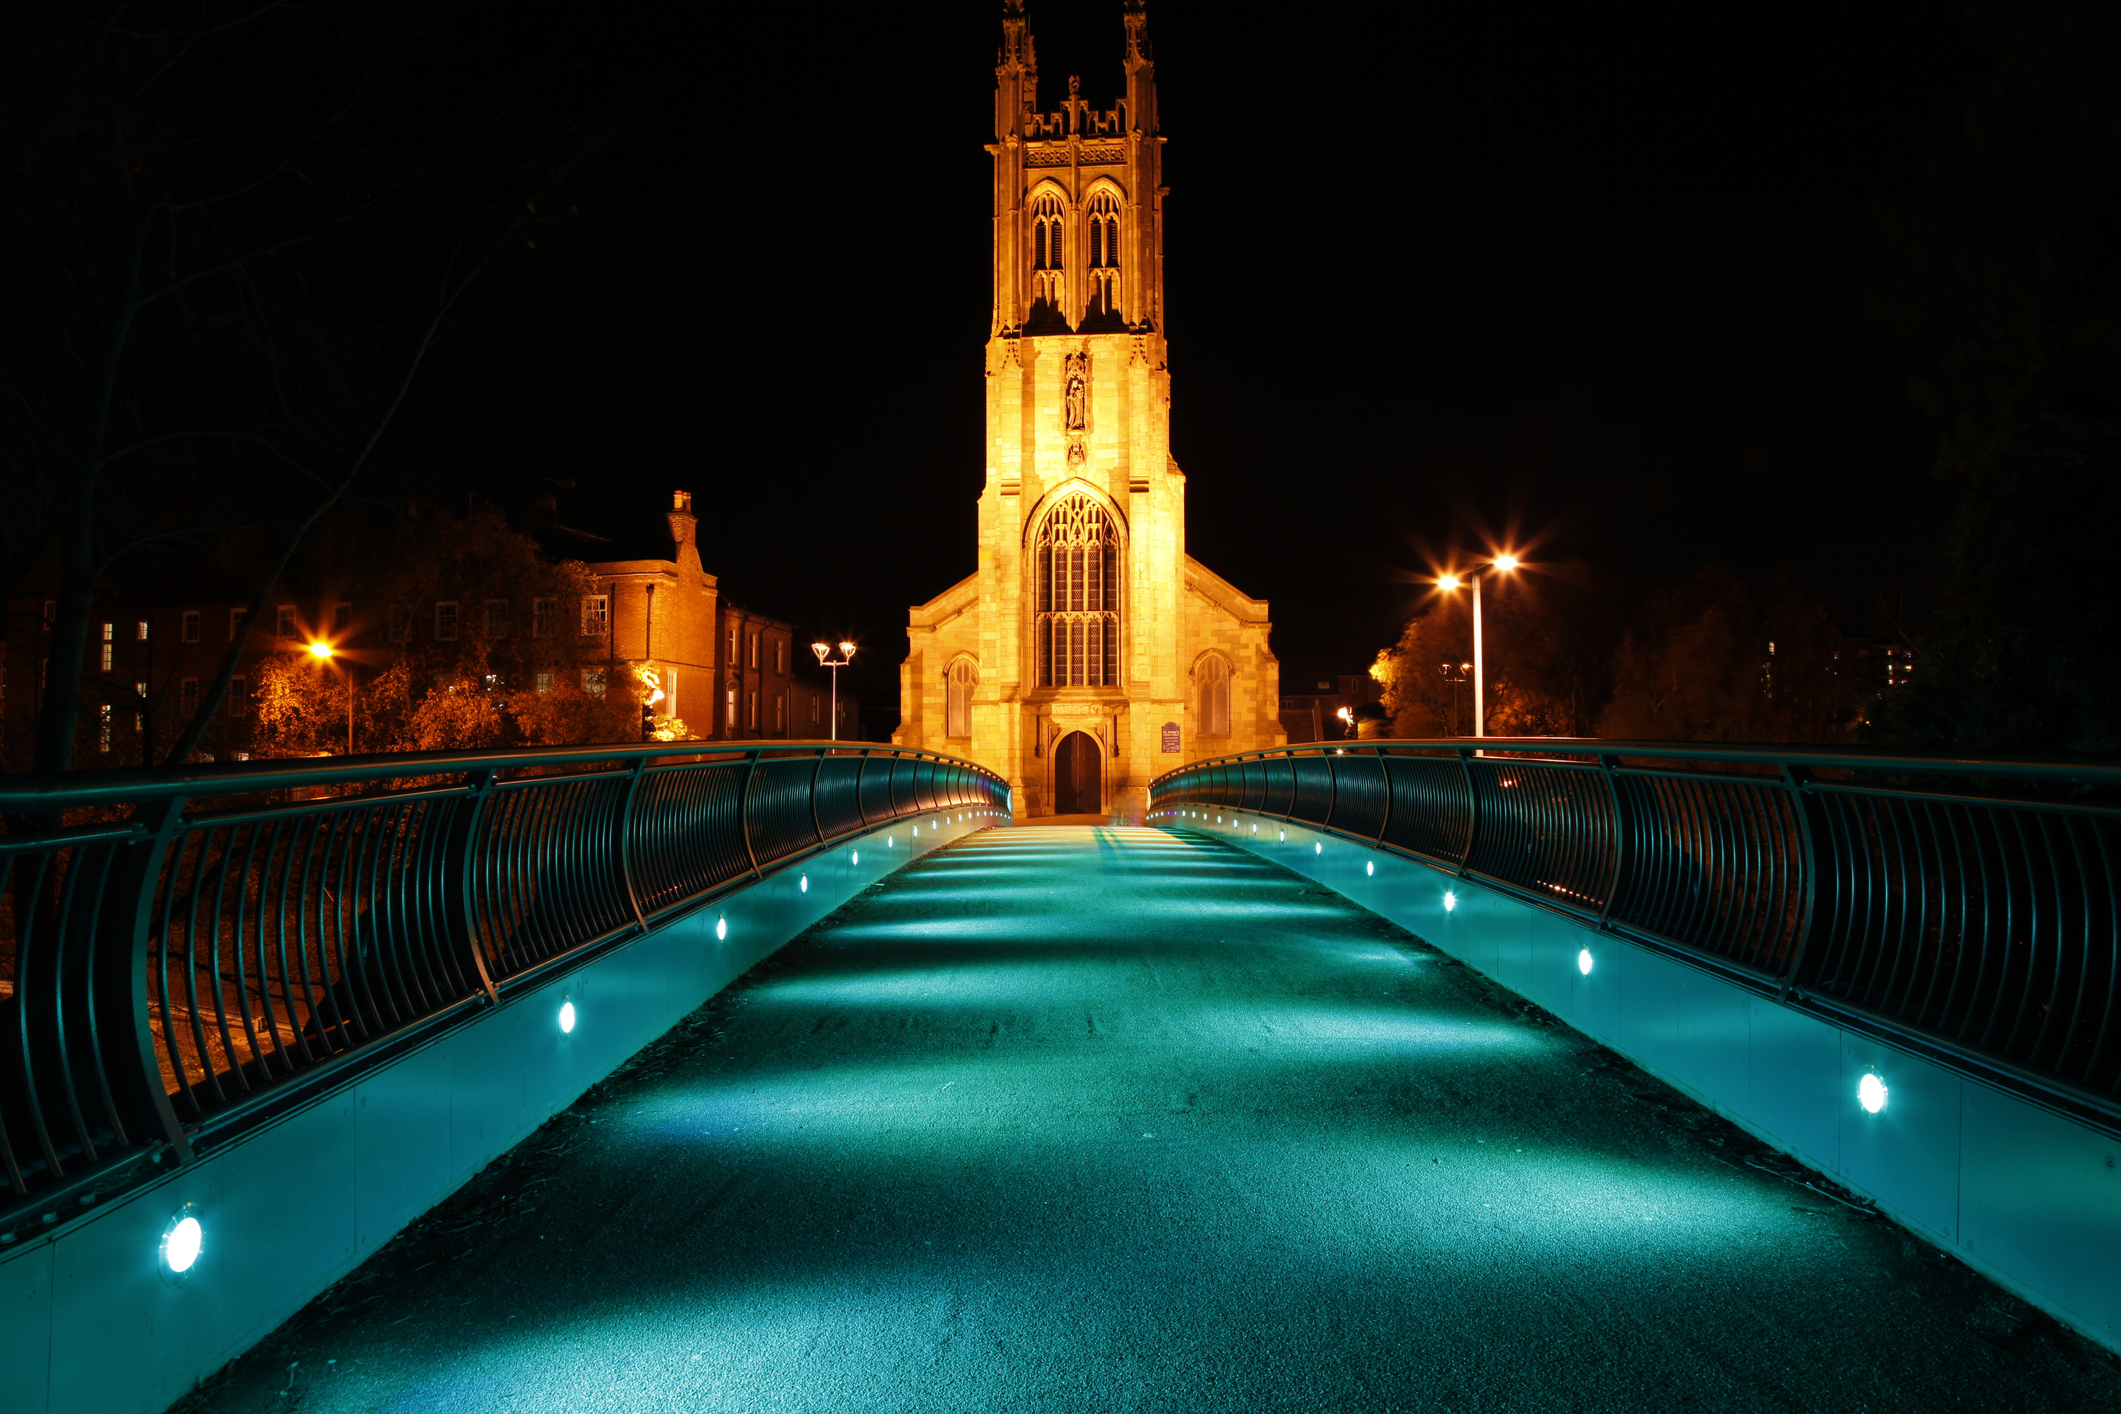 St Mary's Church, Derby City Centre